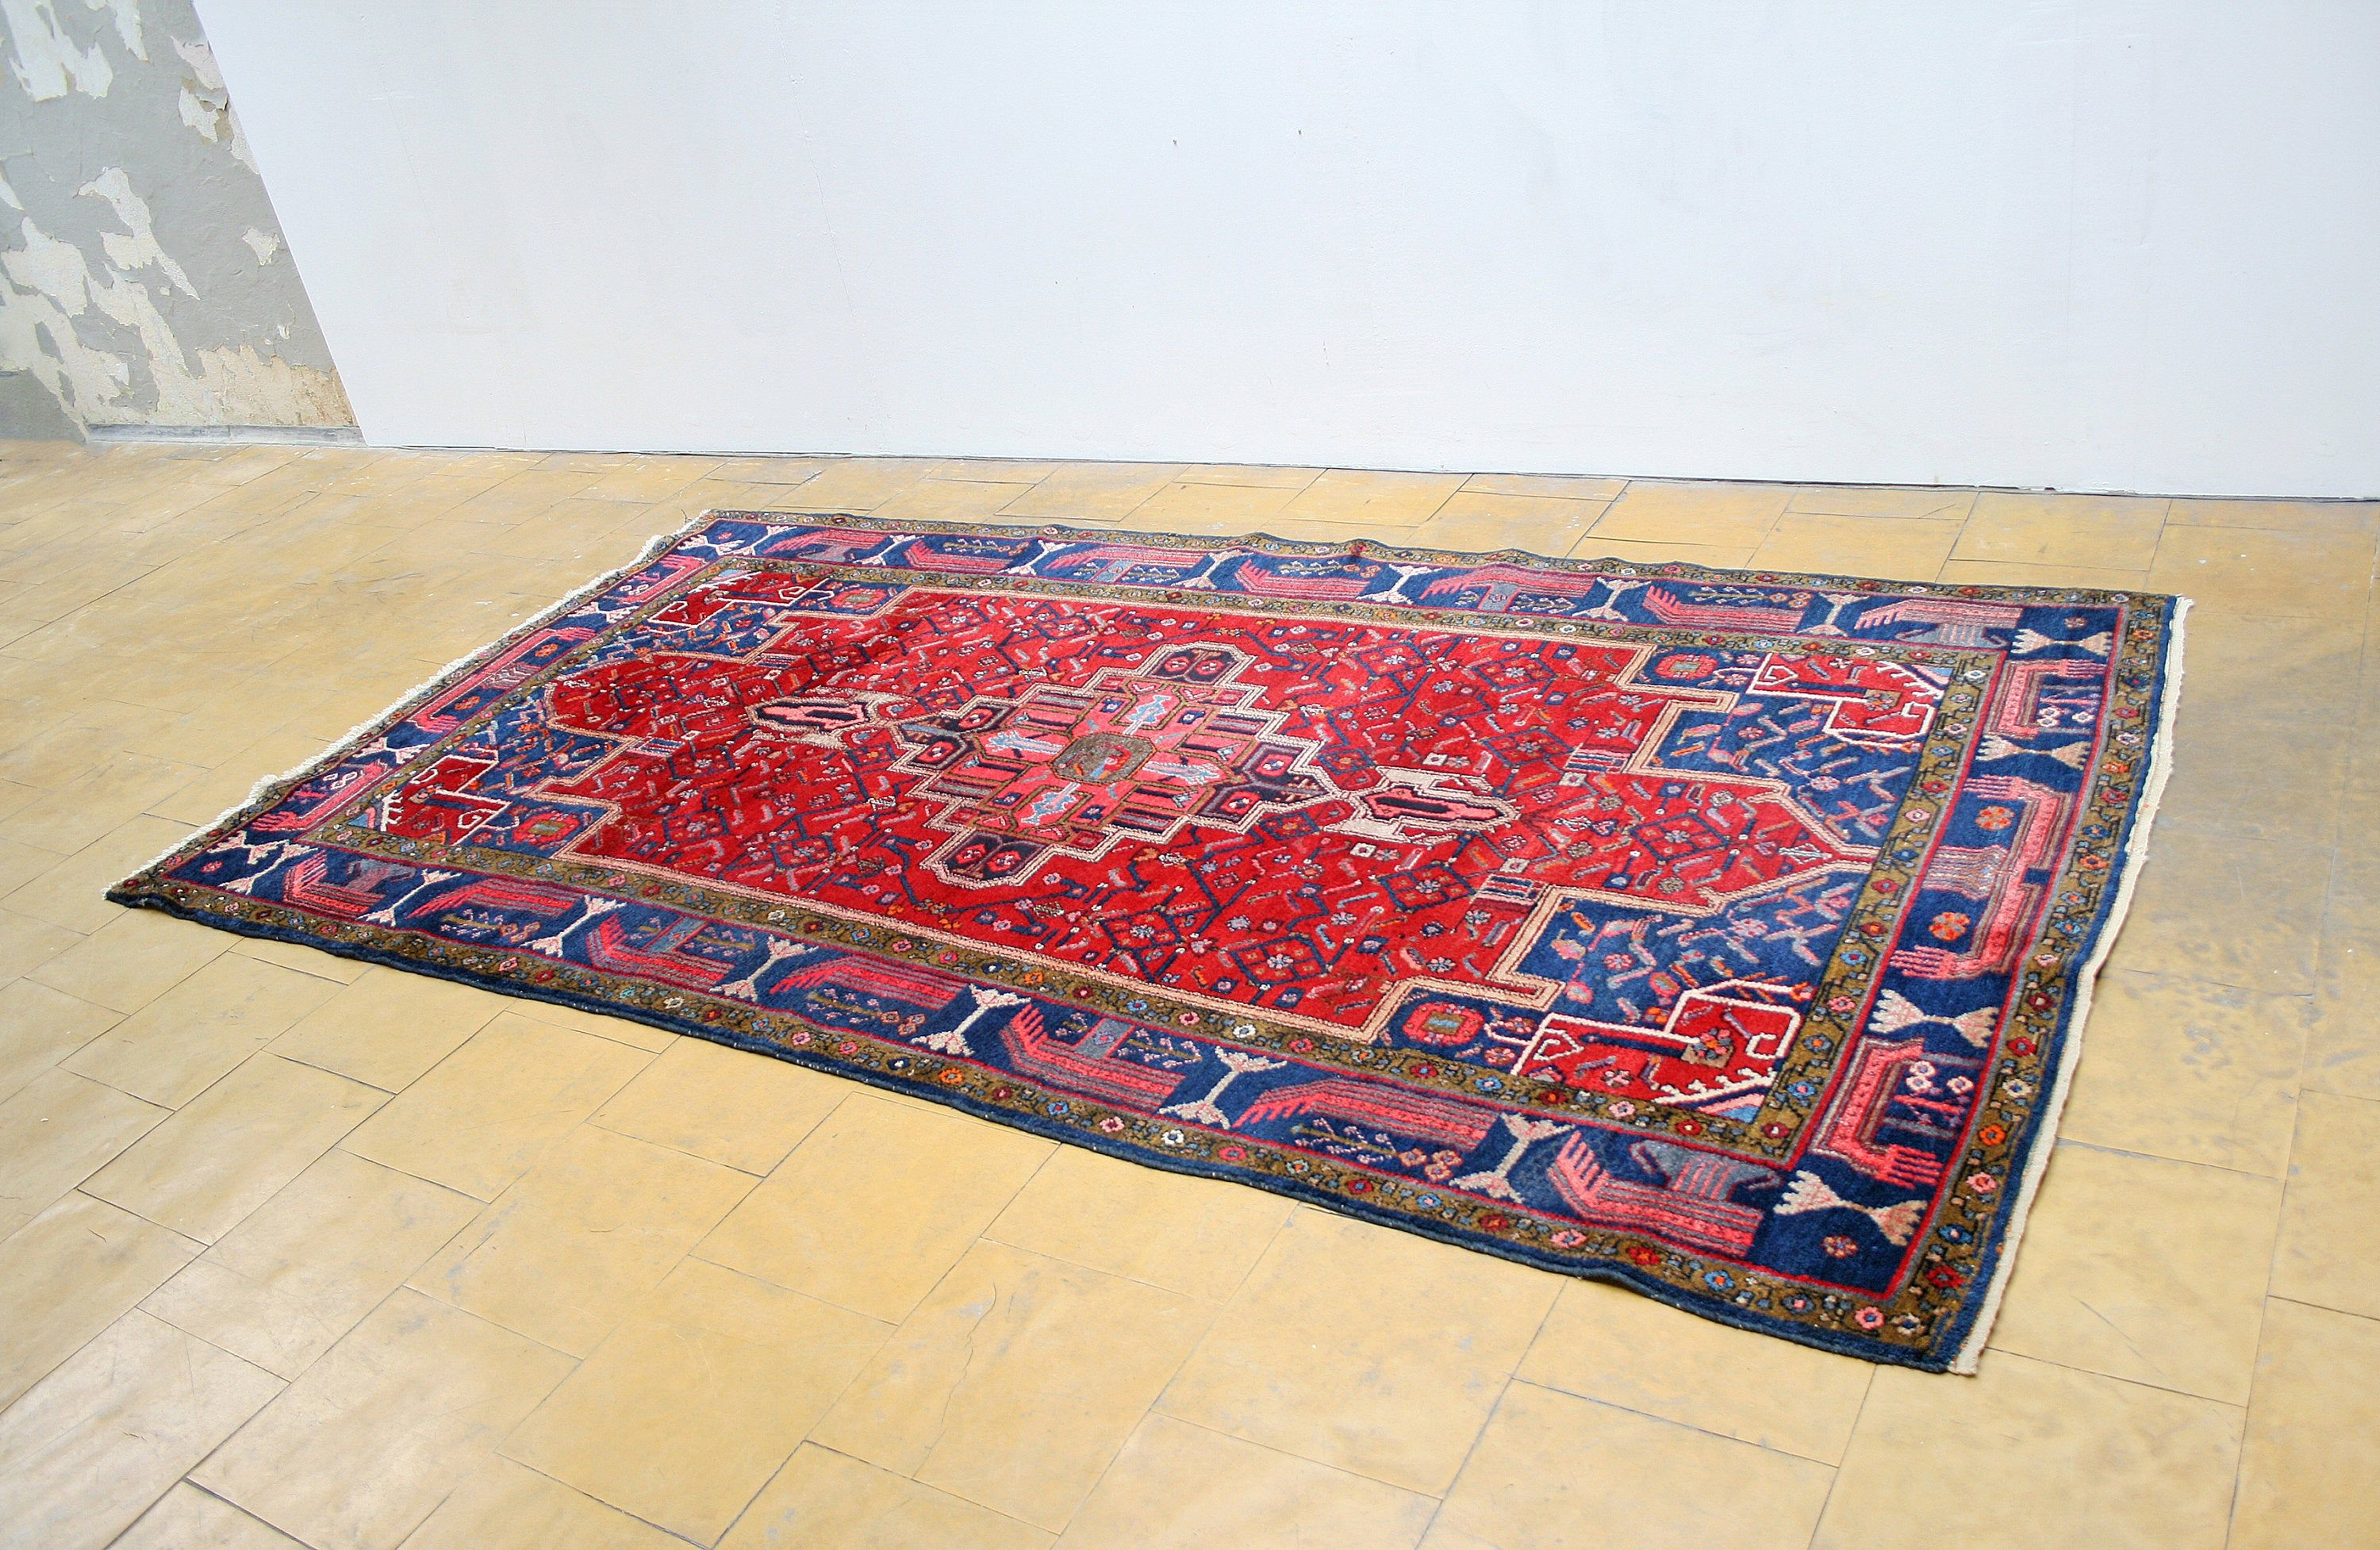 Large Vintage Ruby Red Pink Navy Blue Anatolian Turkish Area Rug Wool Woven Knotted Oriental Retro Boho Bohemian Eclectic Loft Traditional Red And Pink Wool Area Rugs Vintage